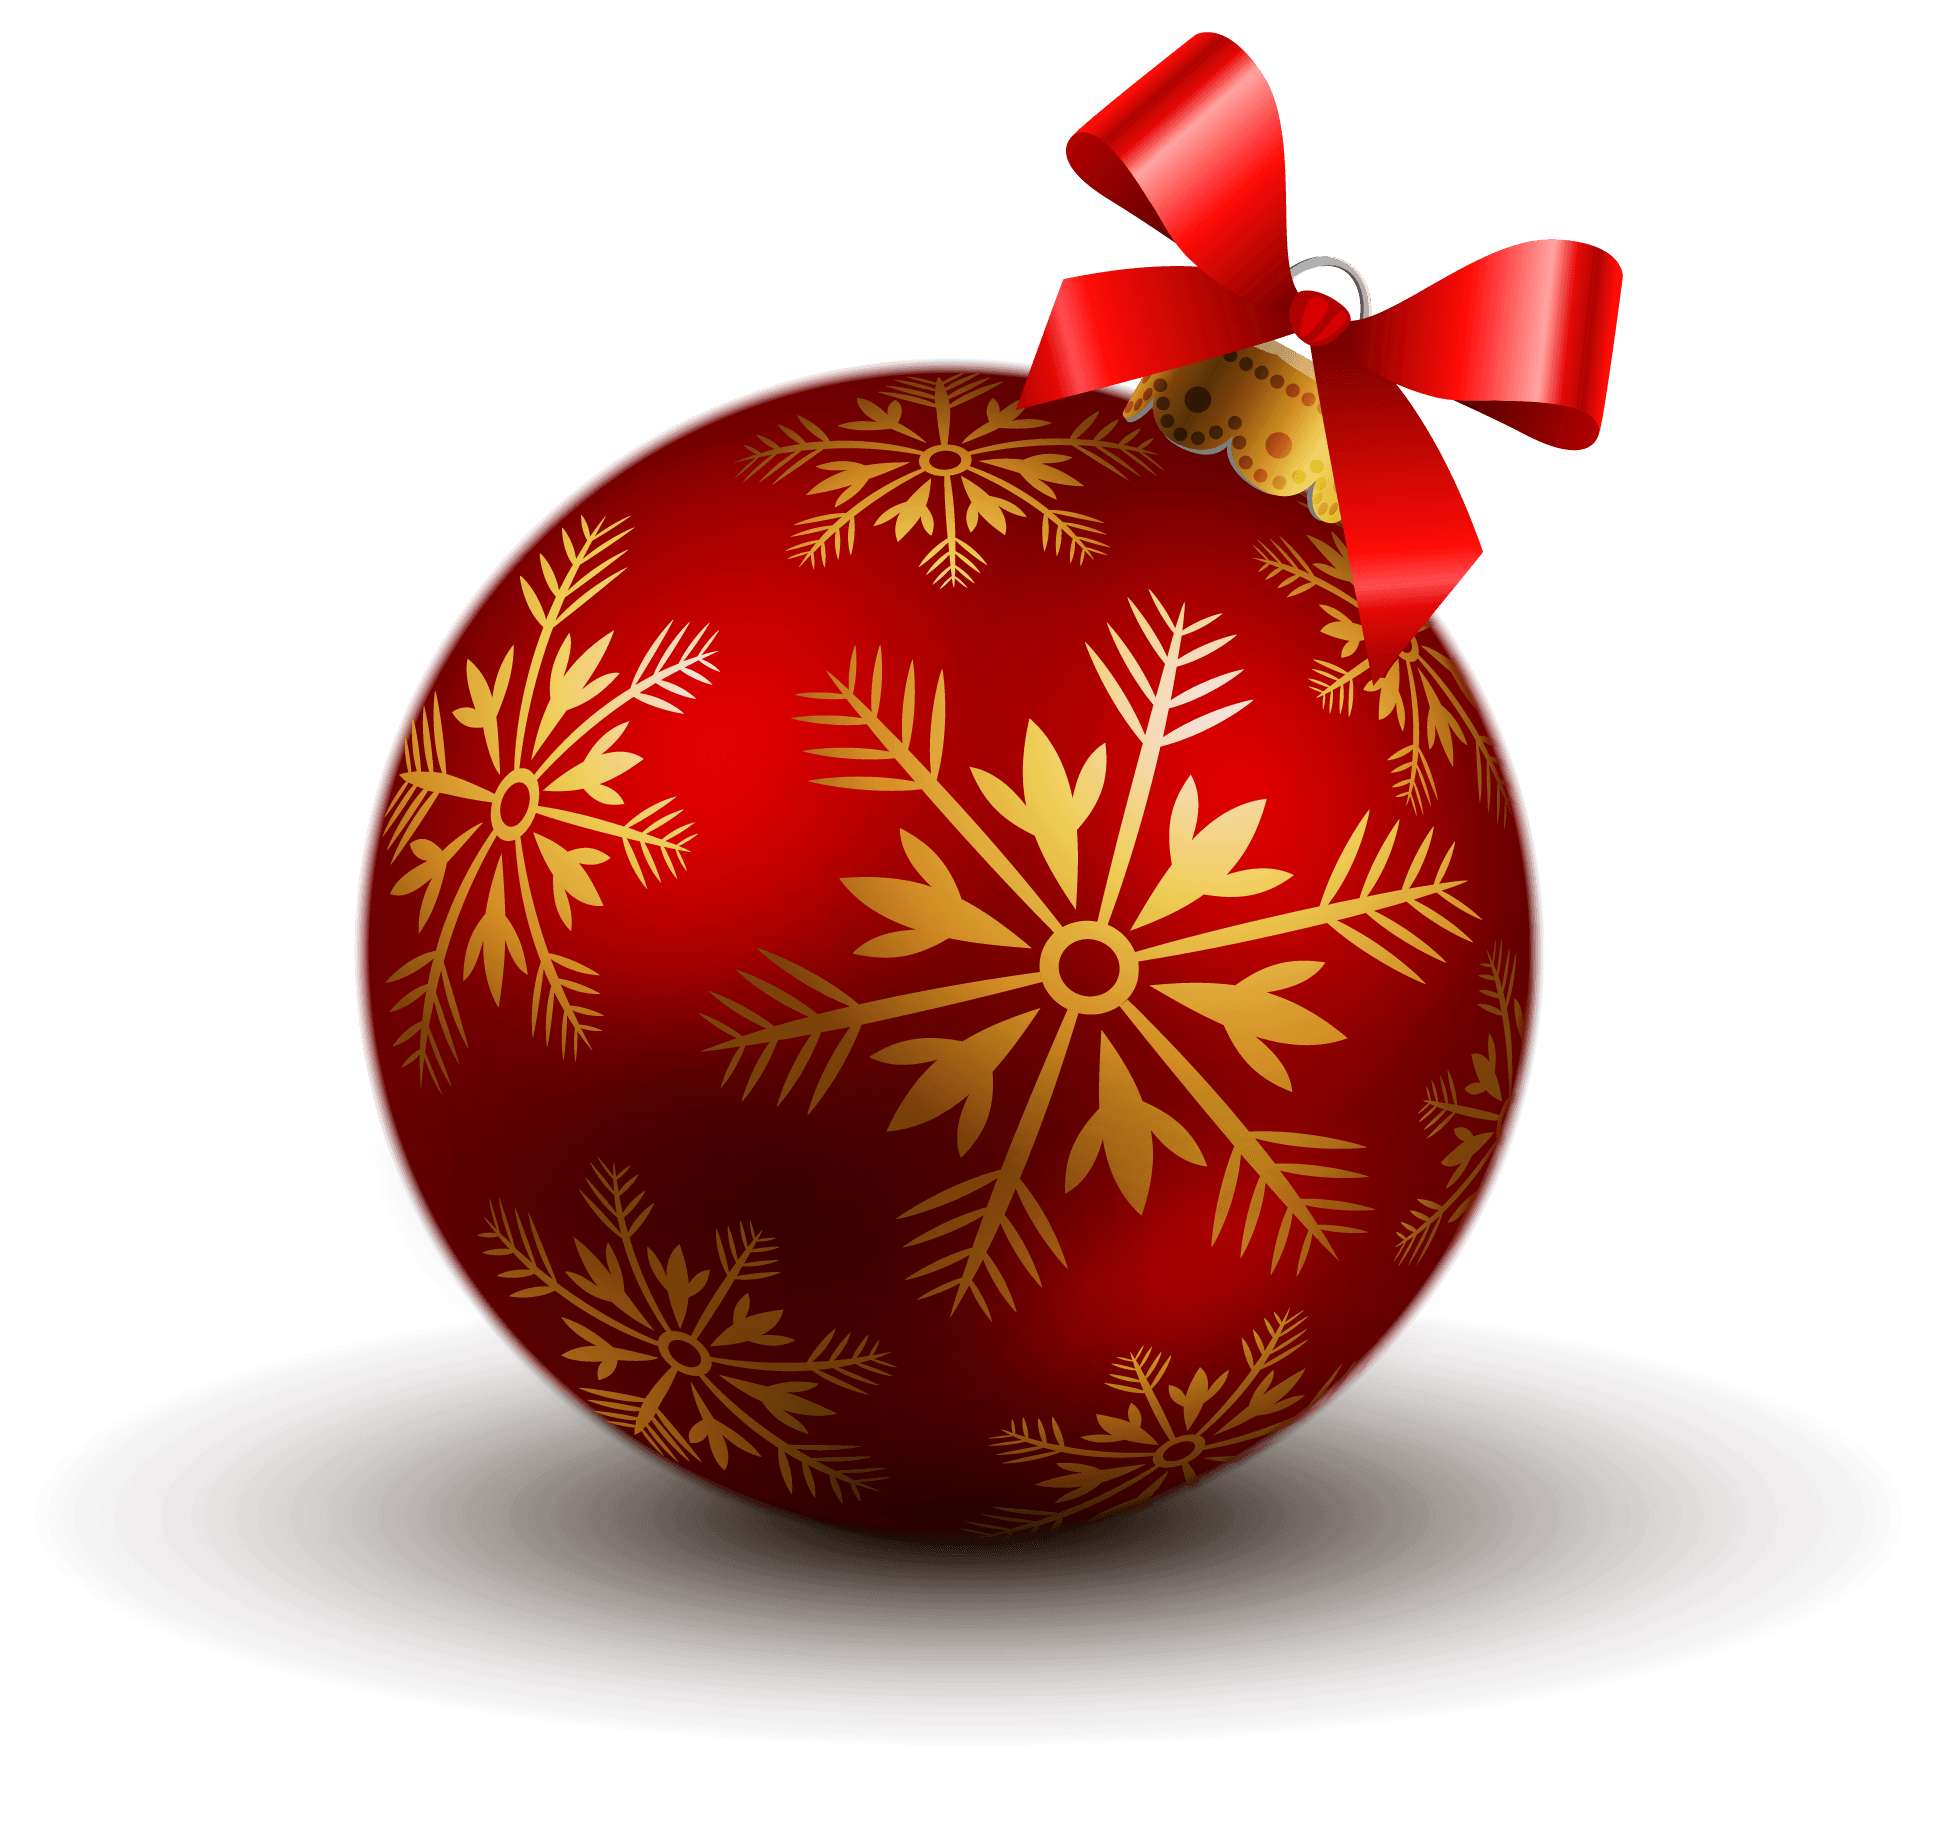 ball christmas transparent png stickpng #9665